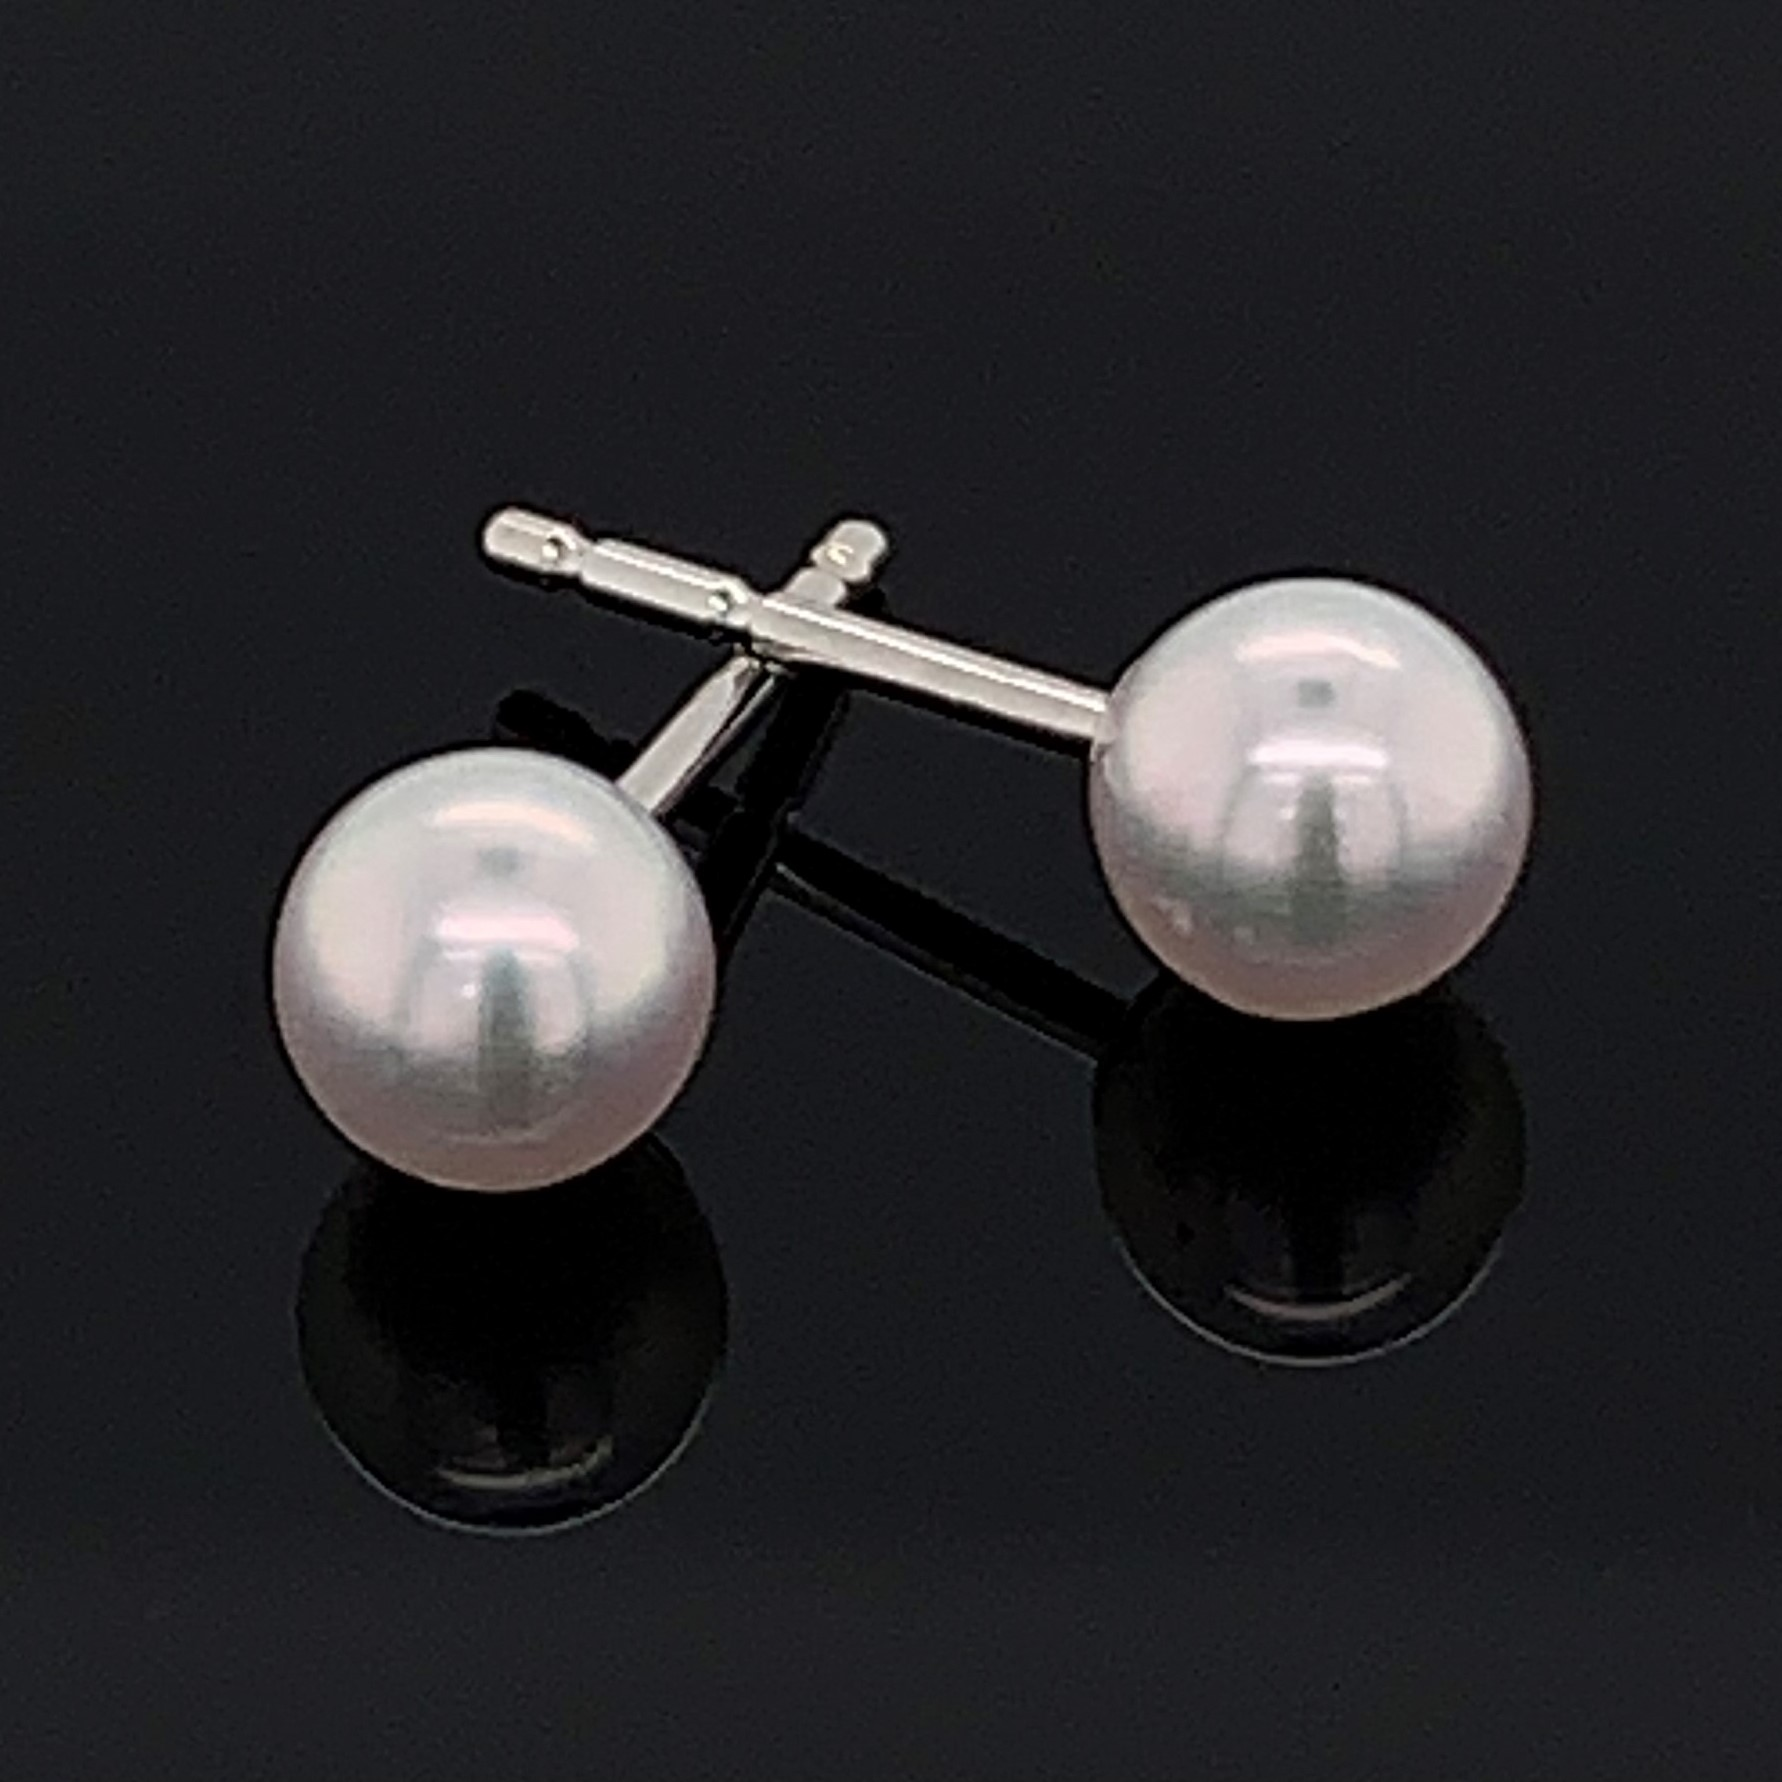 4Mm Cultured Pearl Stud Earrings by Imperial Pearls